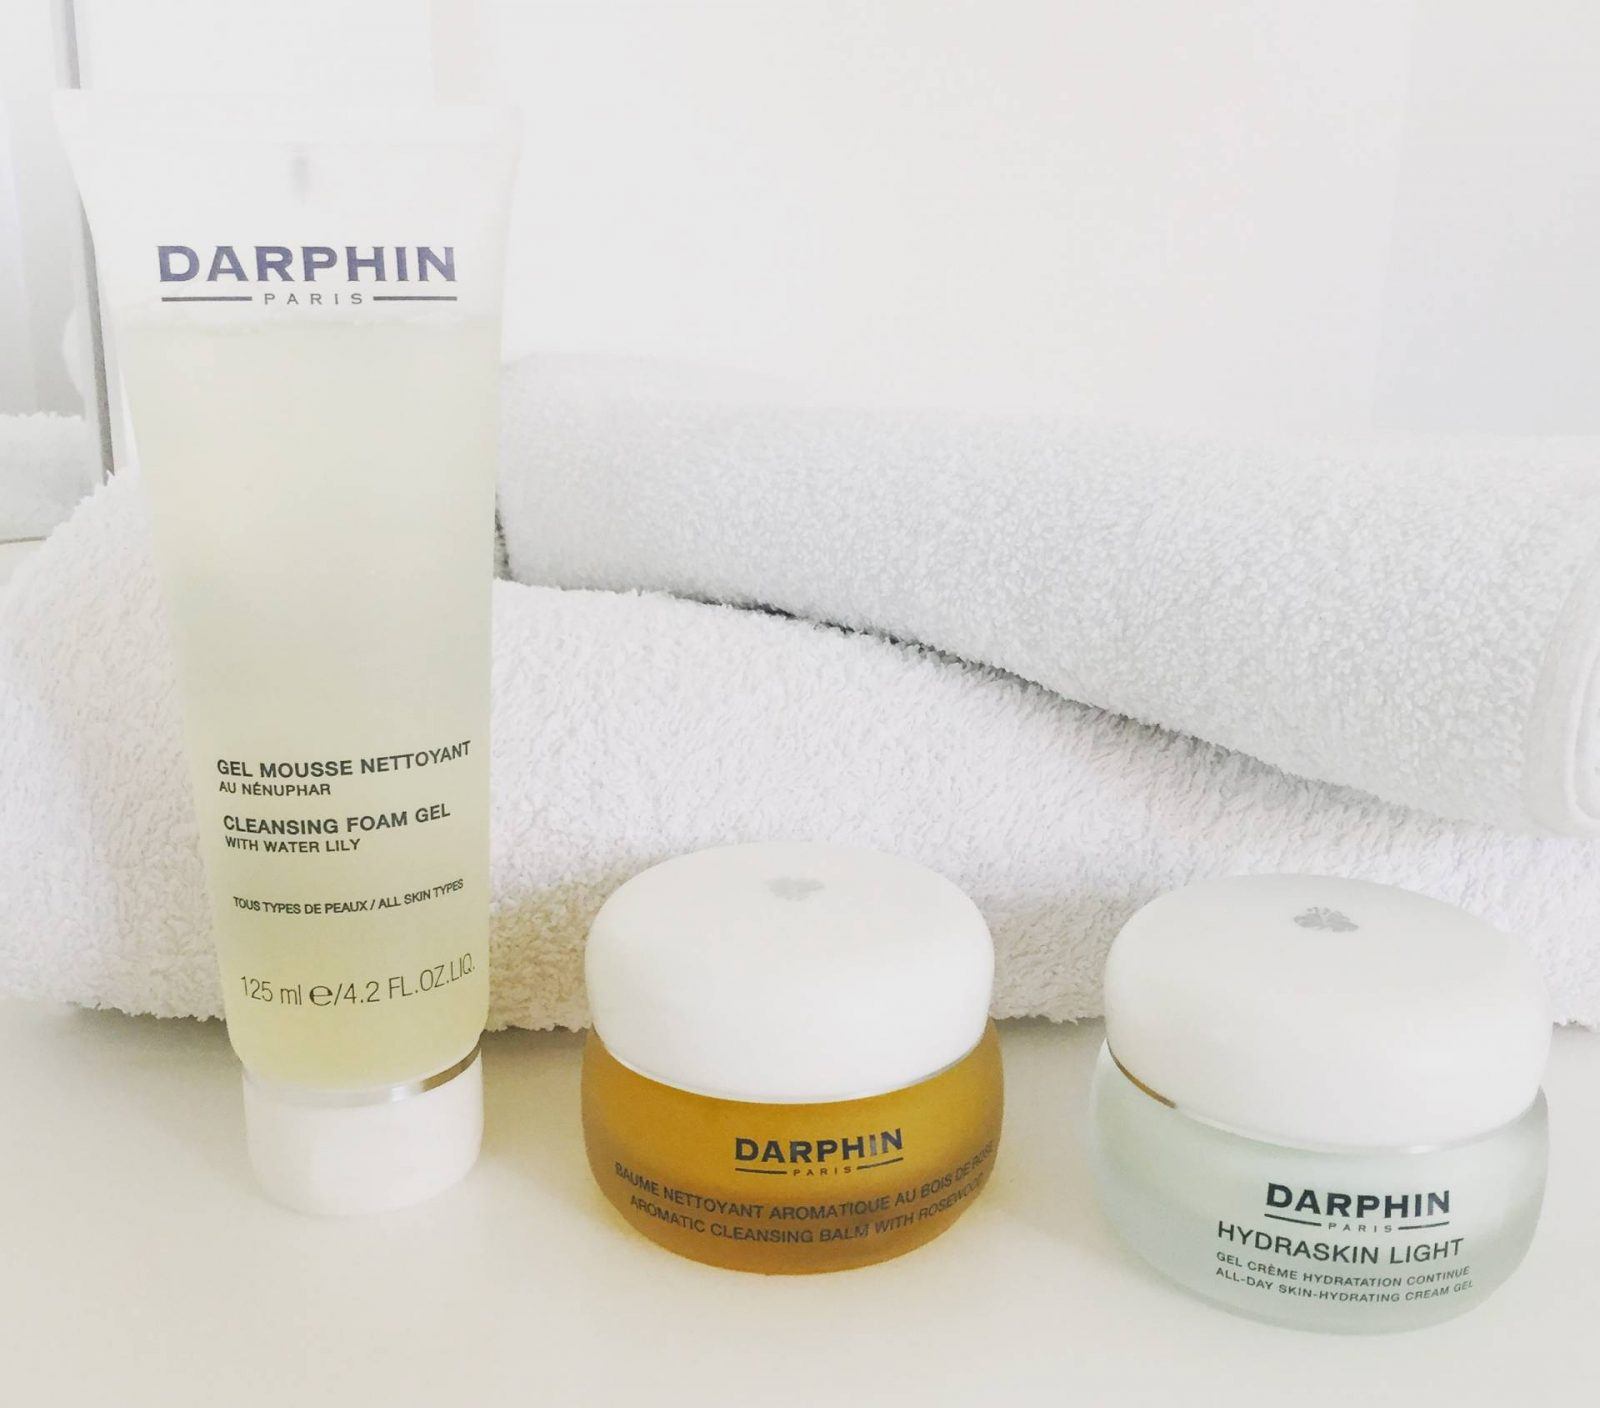 Darphin products